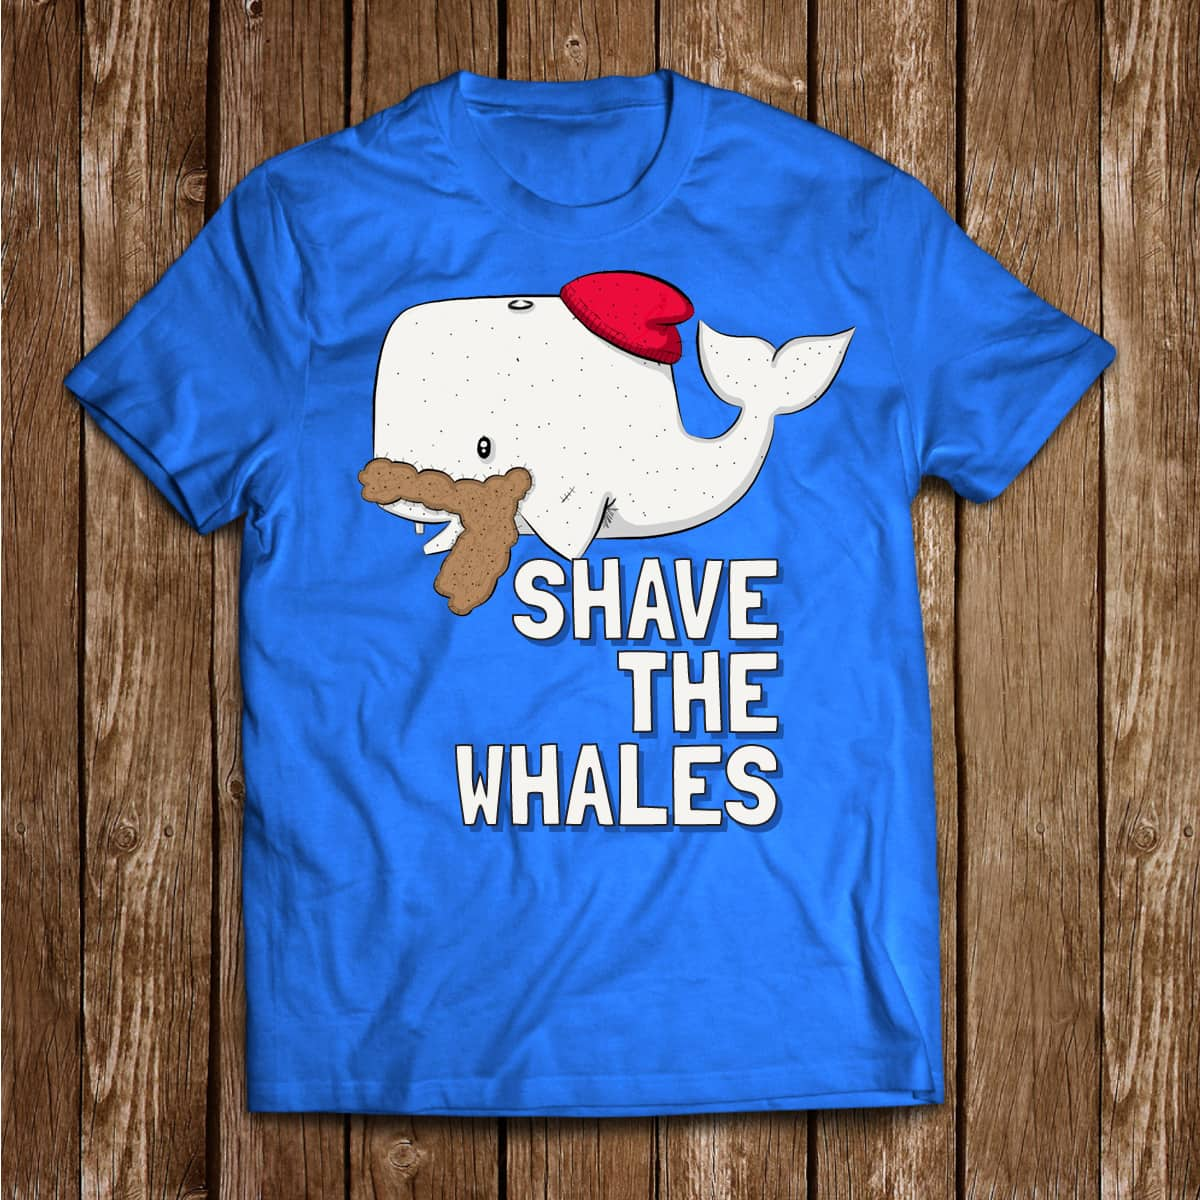 Shave The Whales by curtis.cunningham2 on Threadless